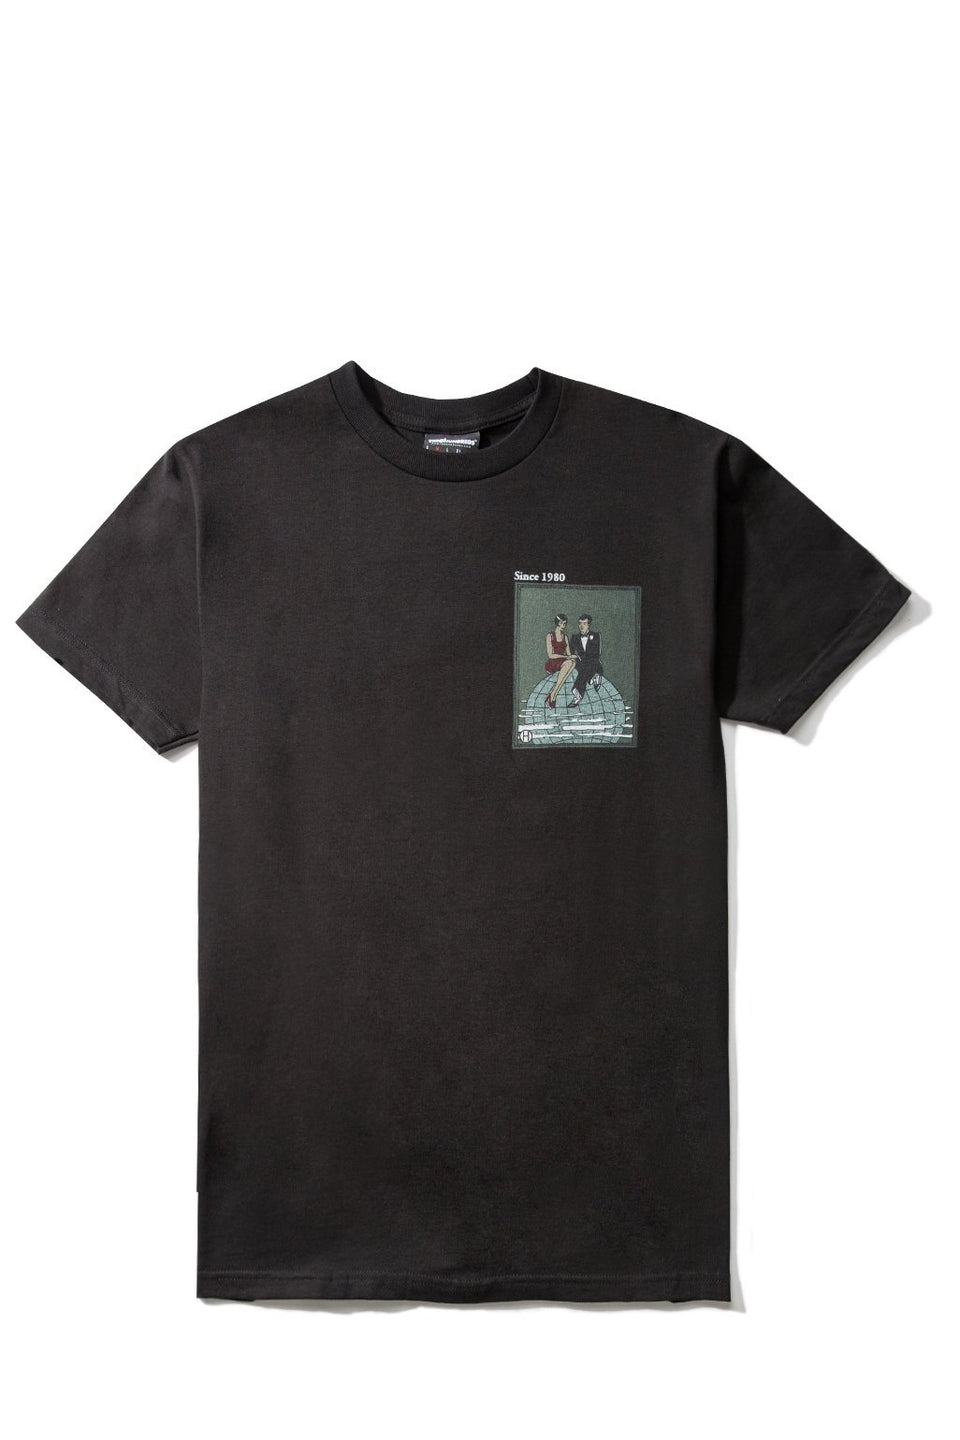 Top of the World T-Shirt-TOPS-The Hundreds UK